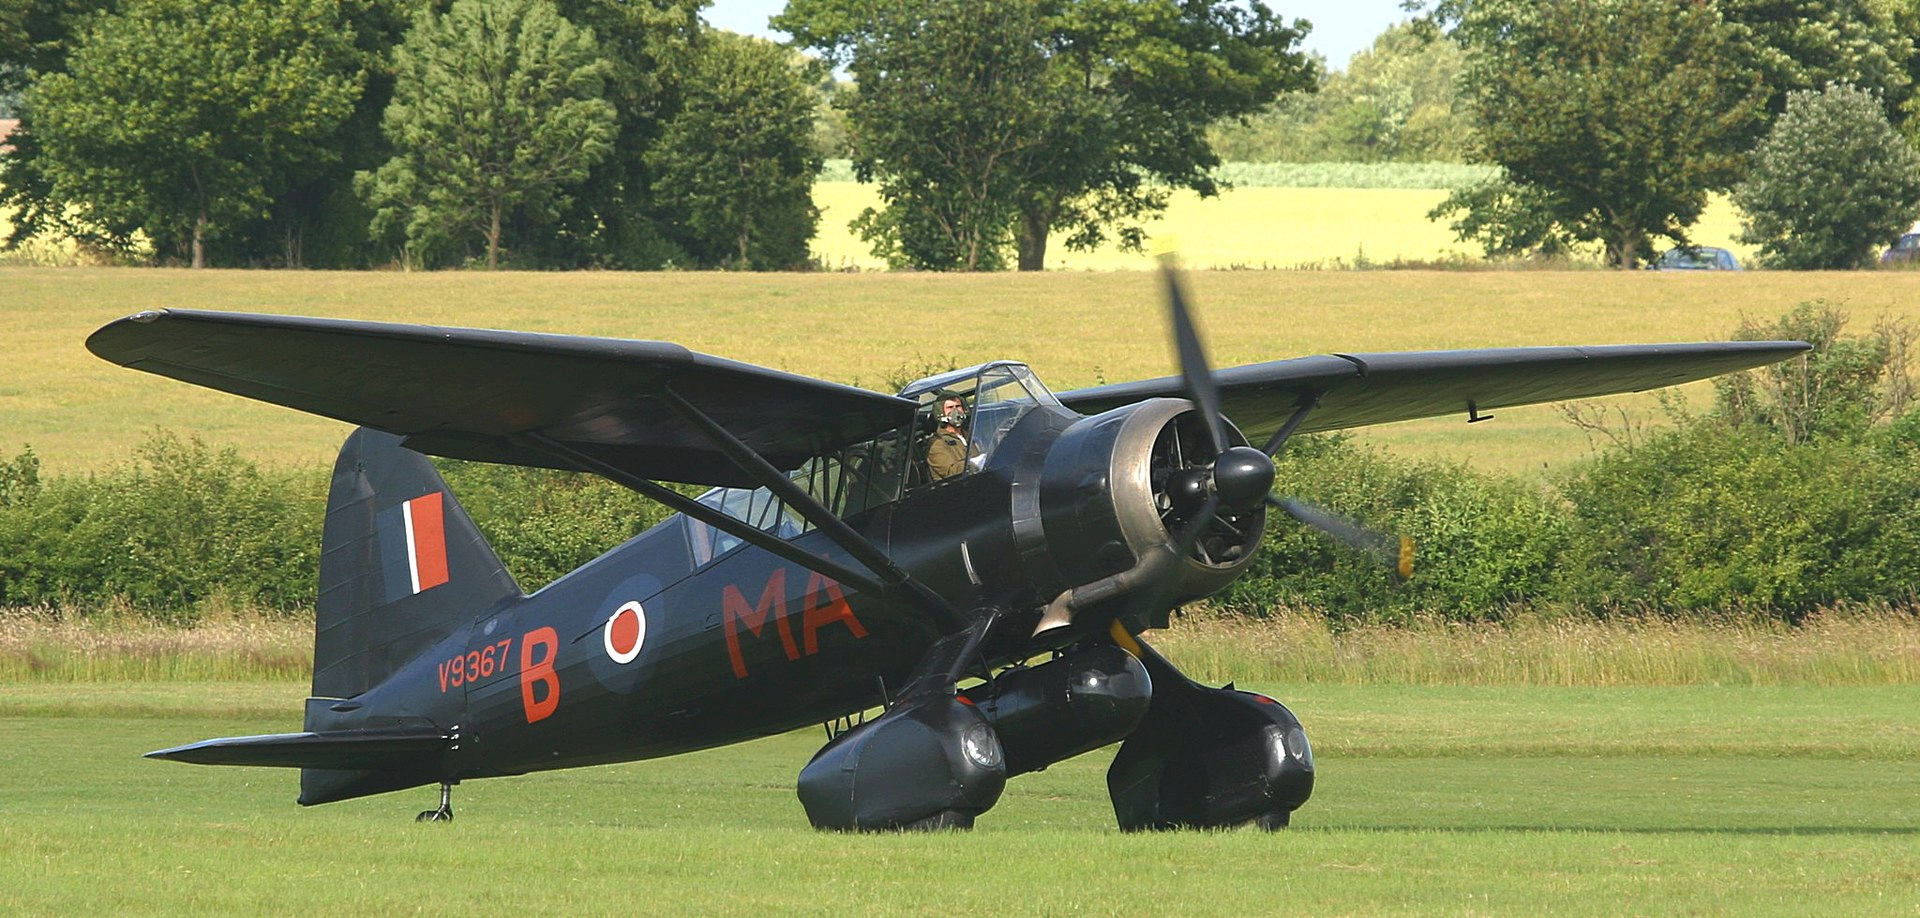 Westland Lysander Mk III (SD), the type used for special missions into occupied France during World War II.